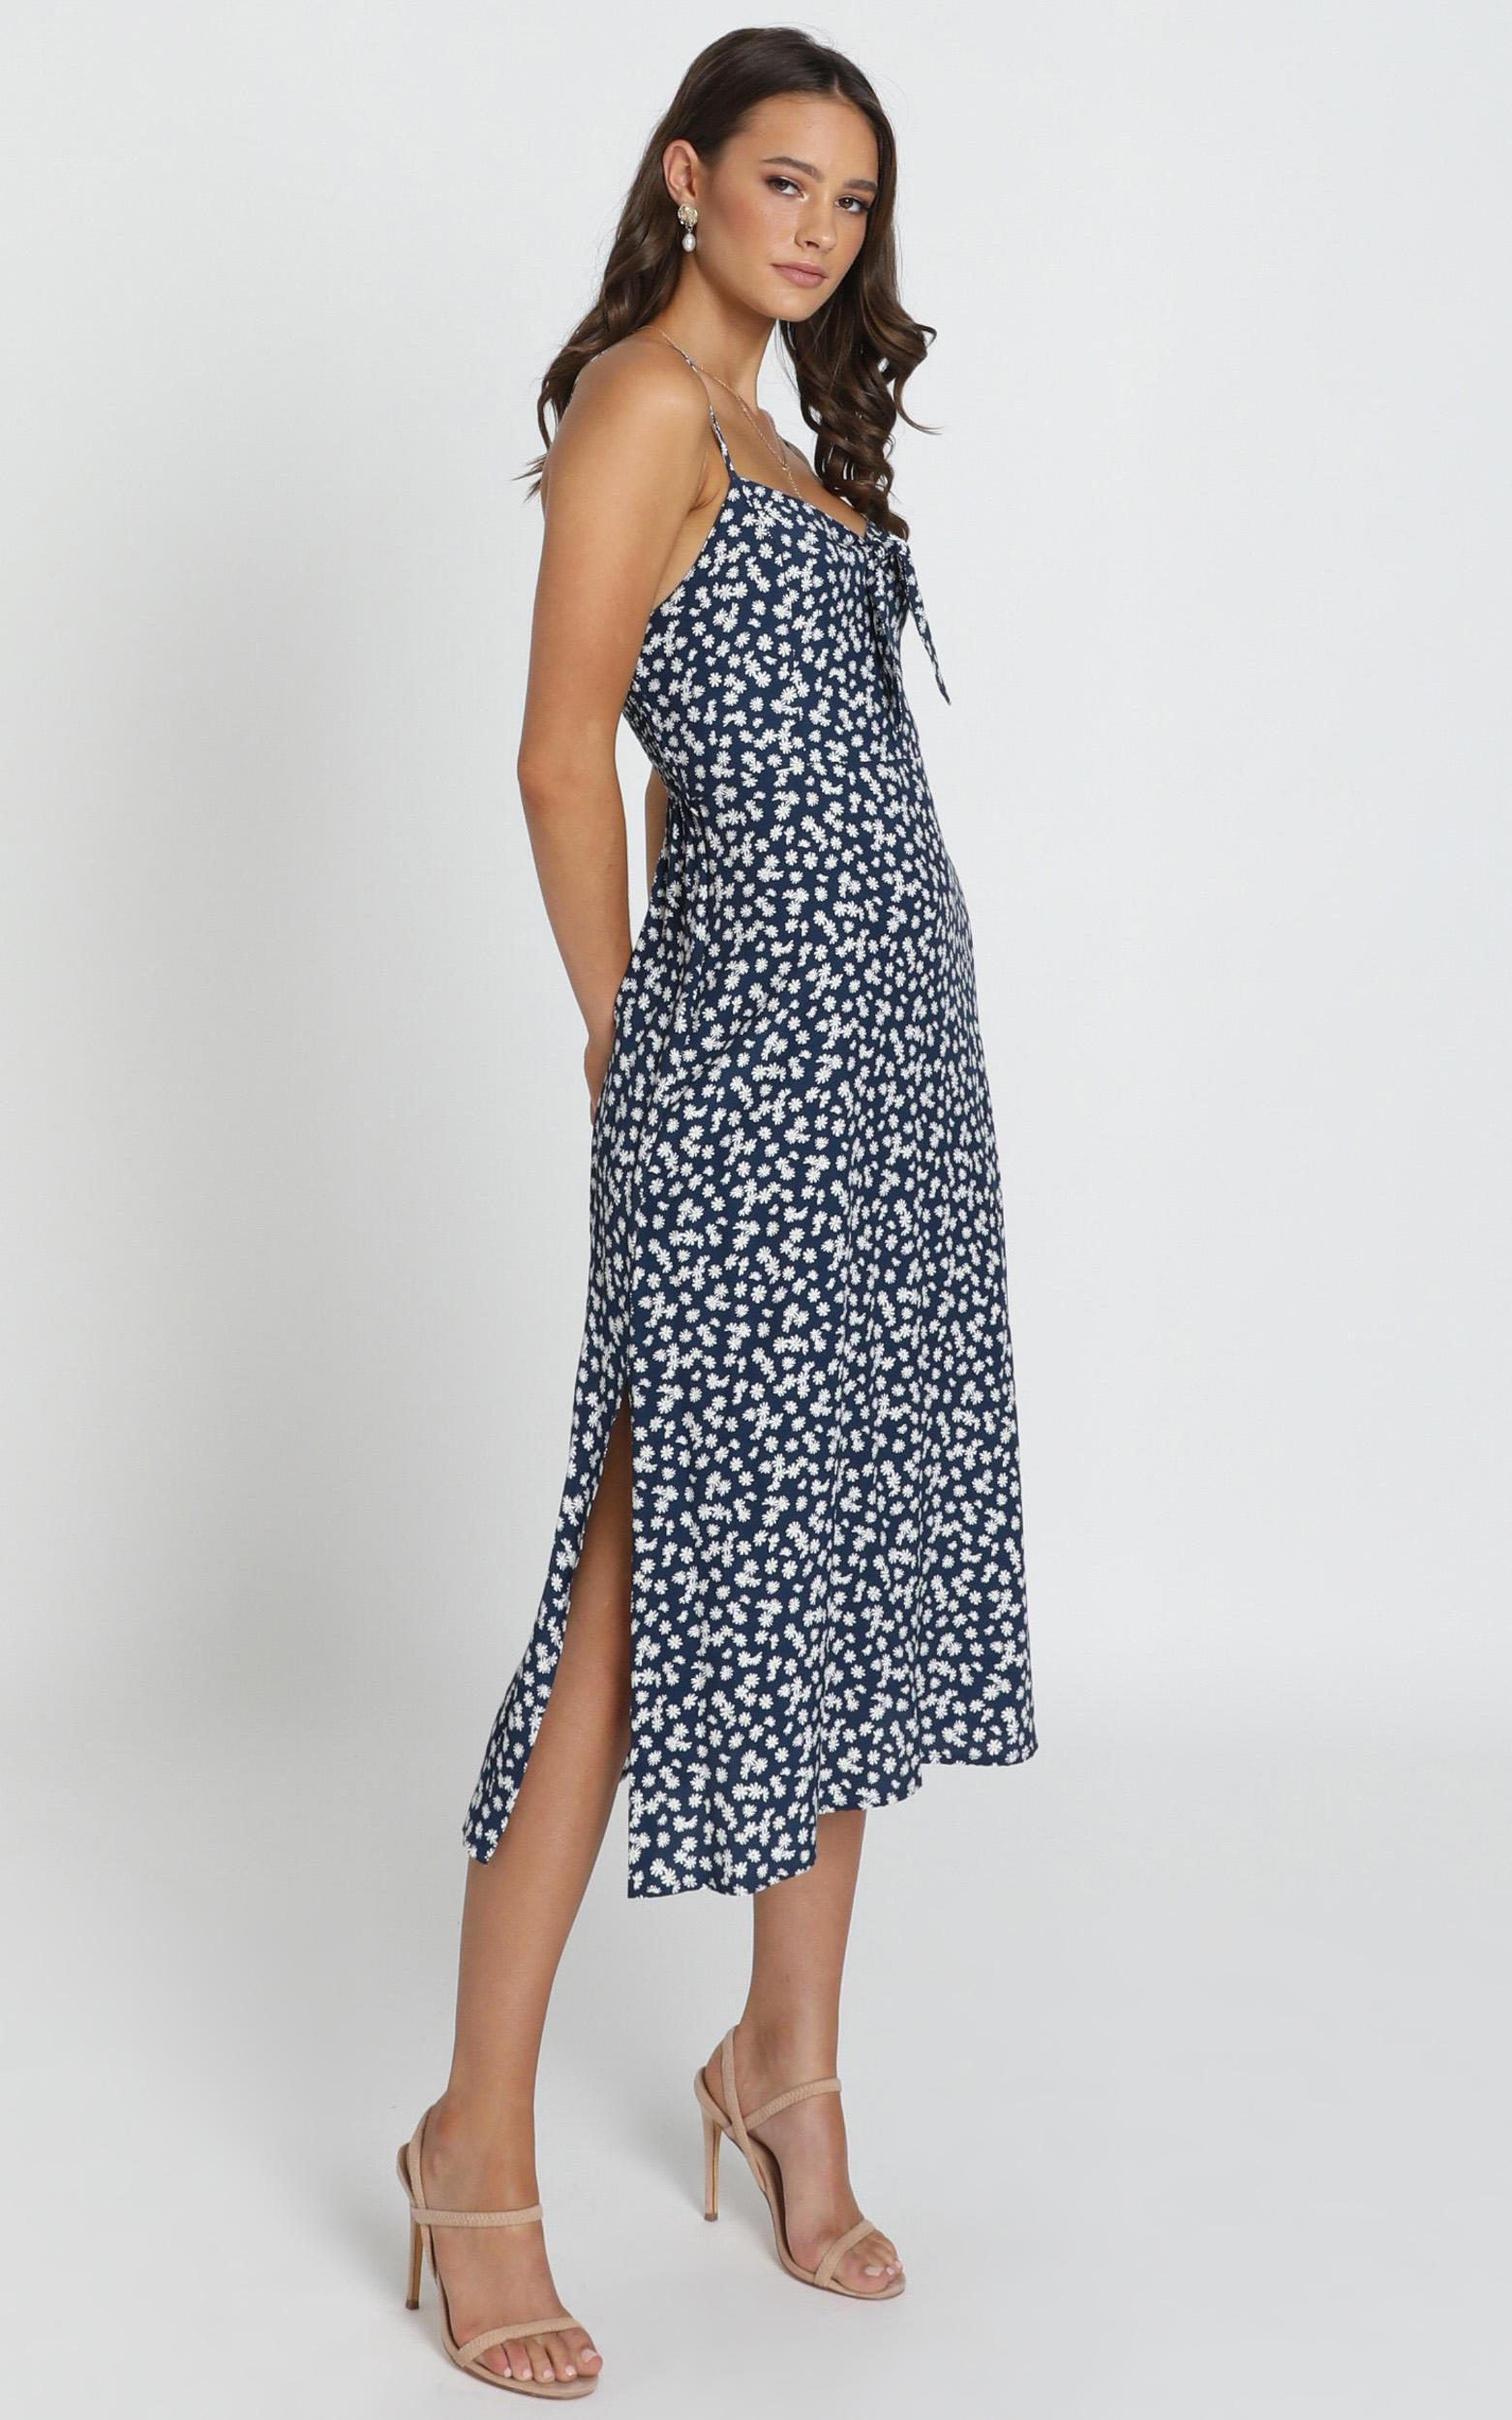 Norah Midi Dress in navy floral - 6 (XS), Navy, hi-res image number null